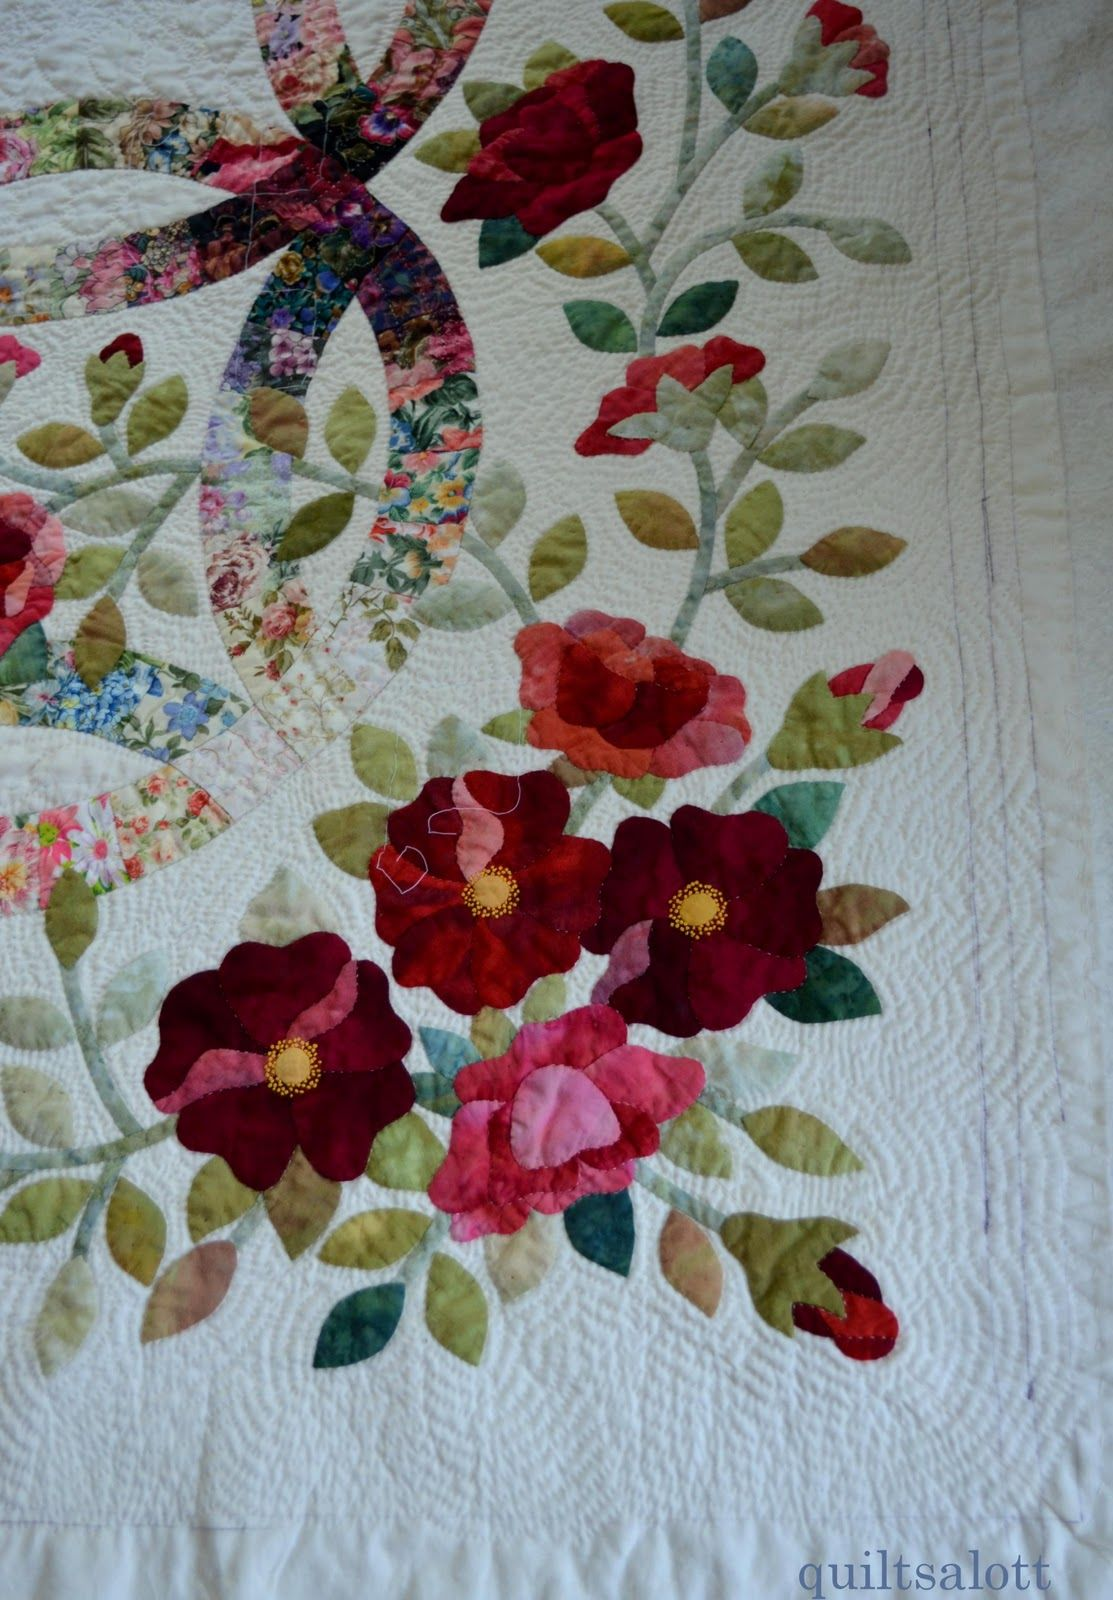 beautiful applique work. quilts are always intricate and